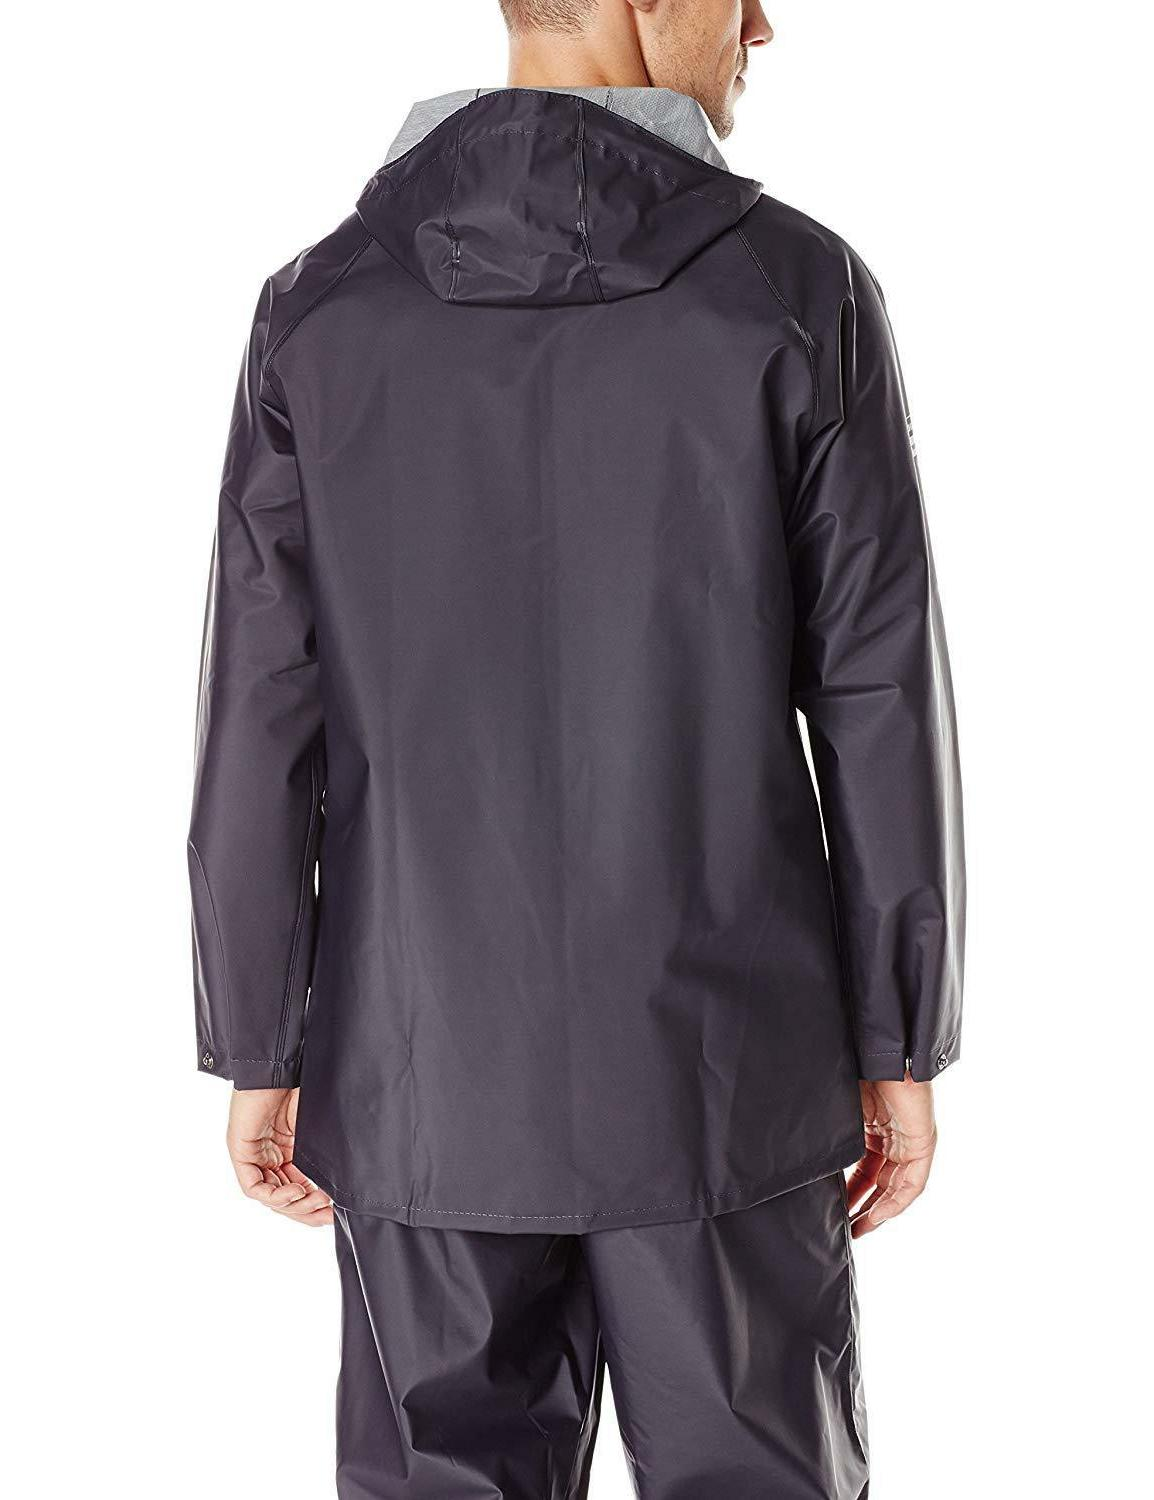 Helly Mandal Rain Coat Jacket